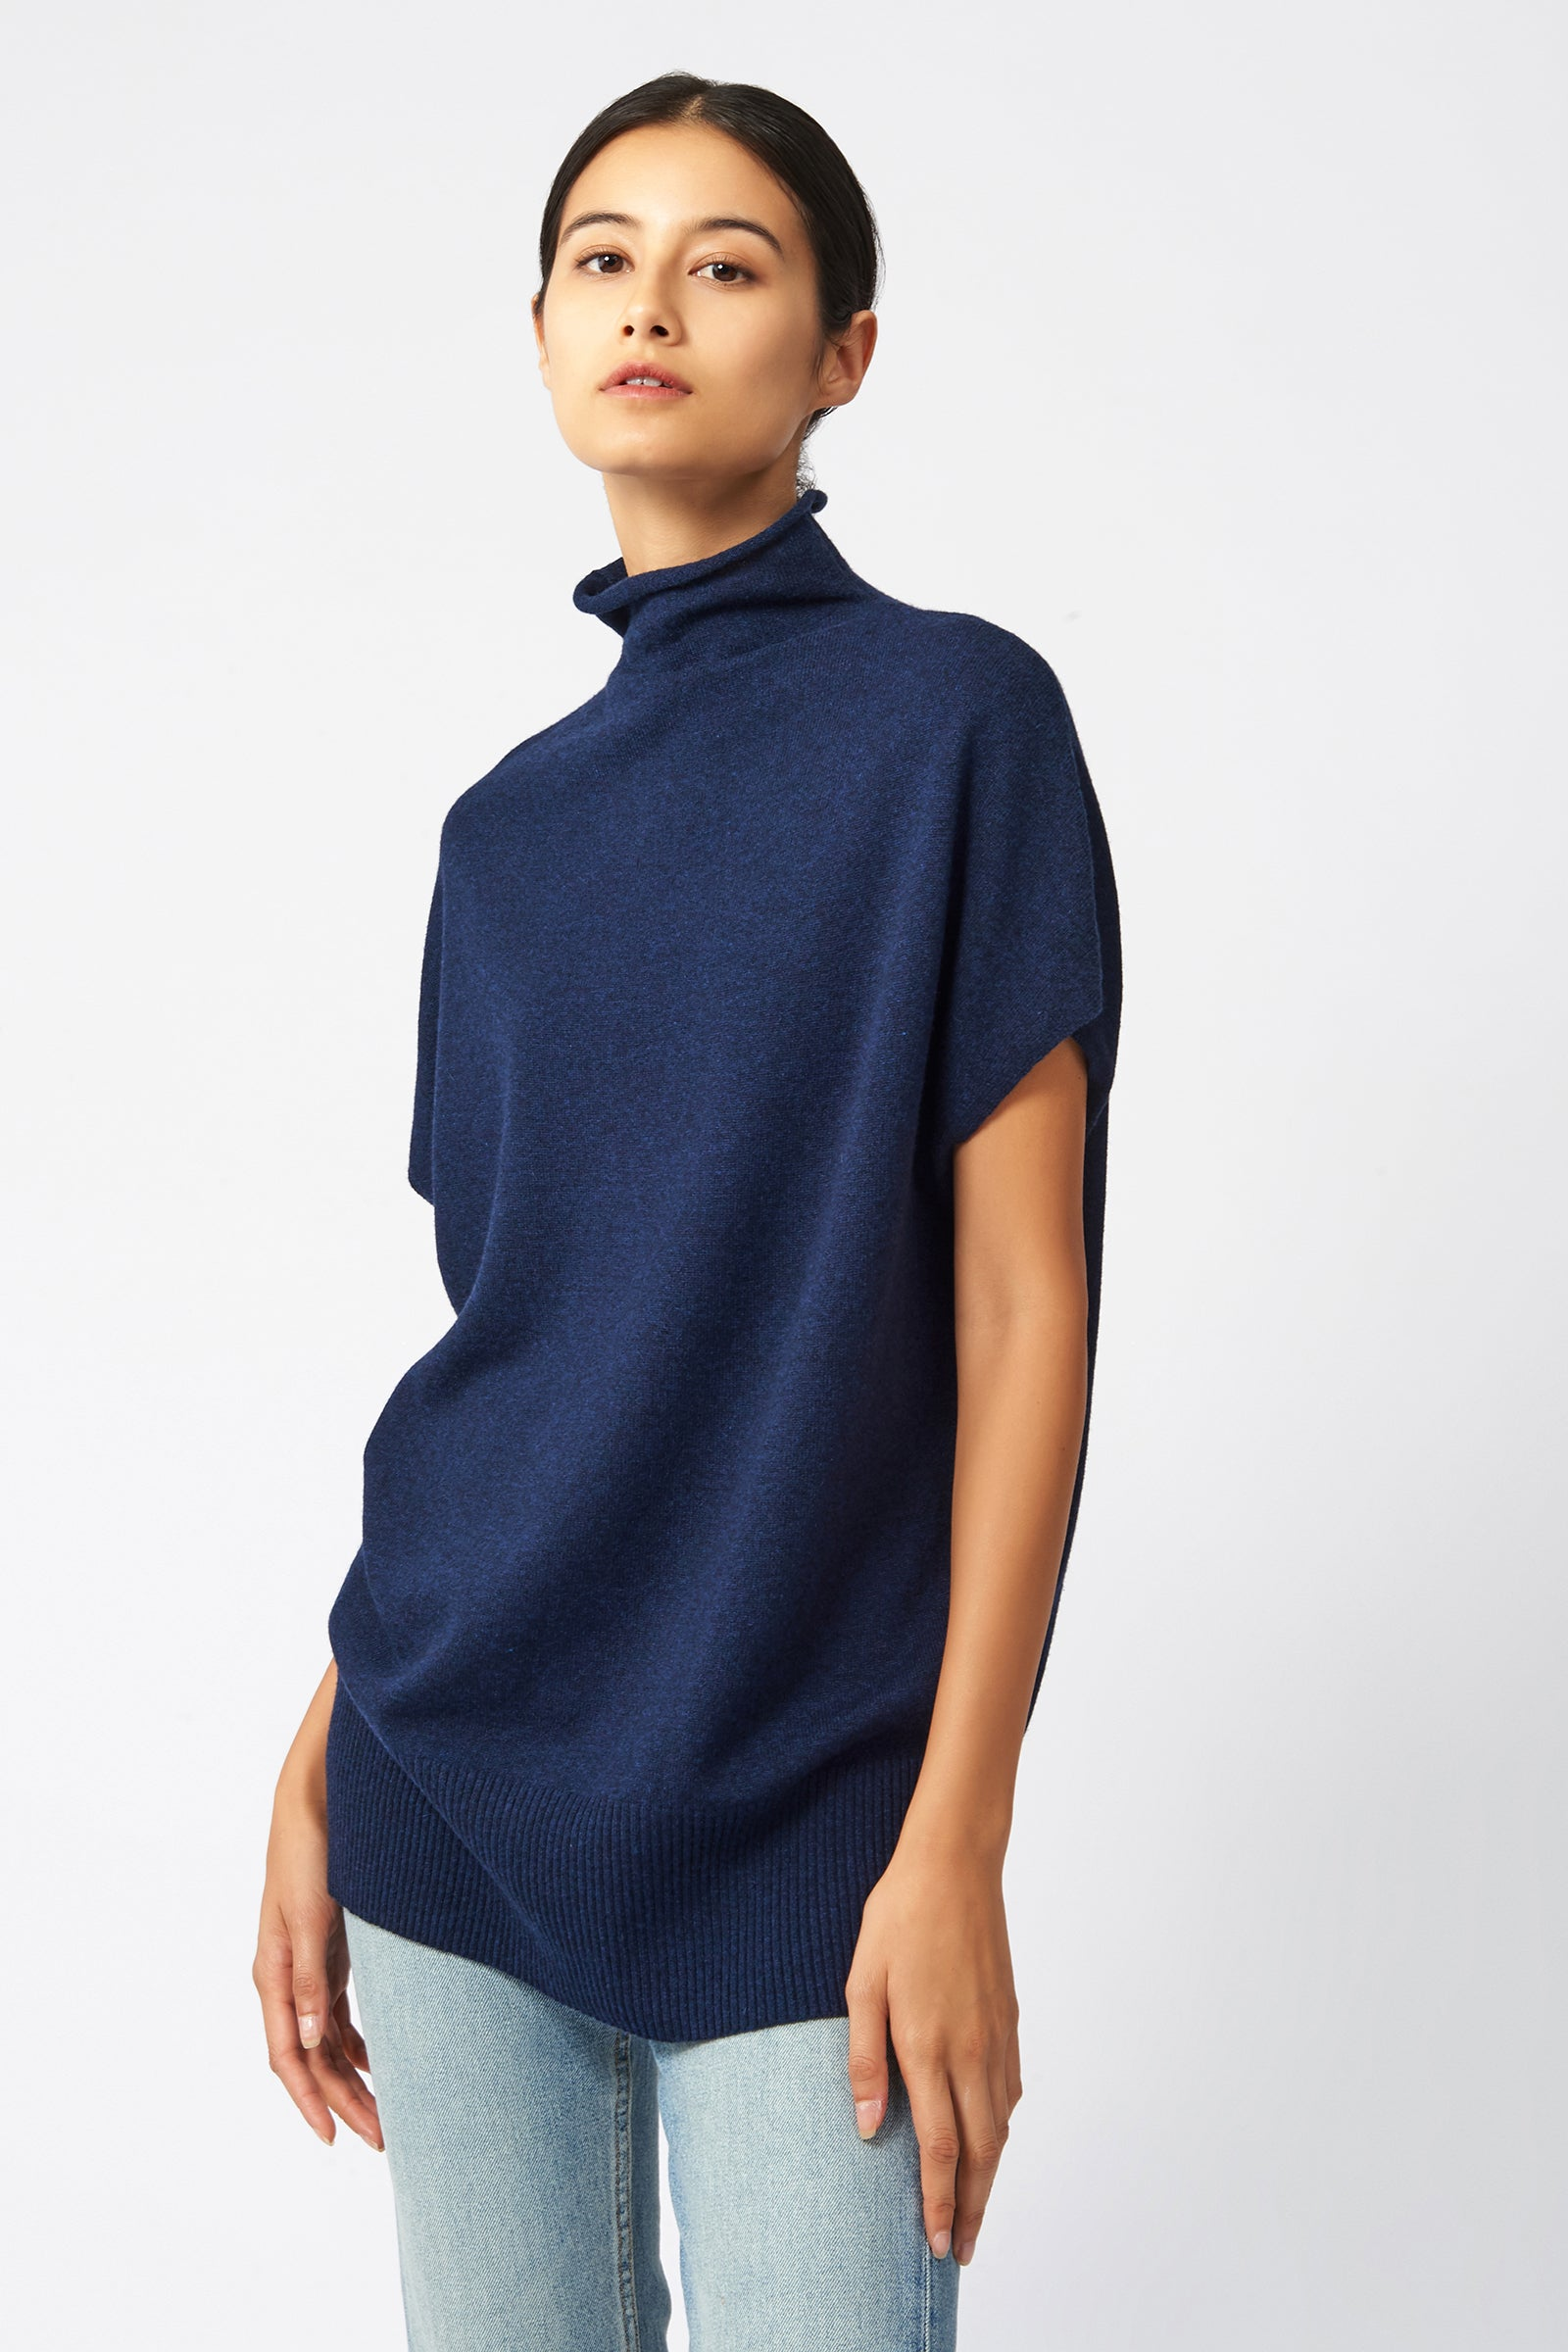 Kal Rieman Cashmere Funnelneck in Navy on Model Front Side View